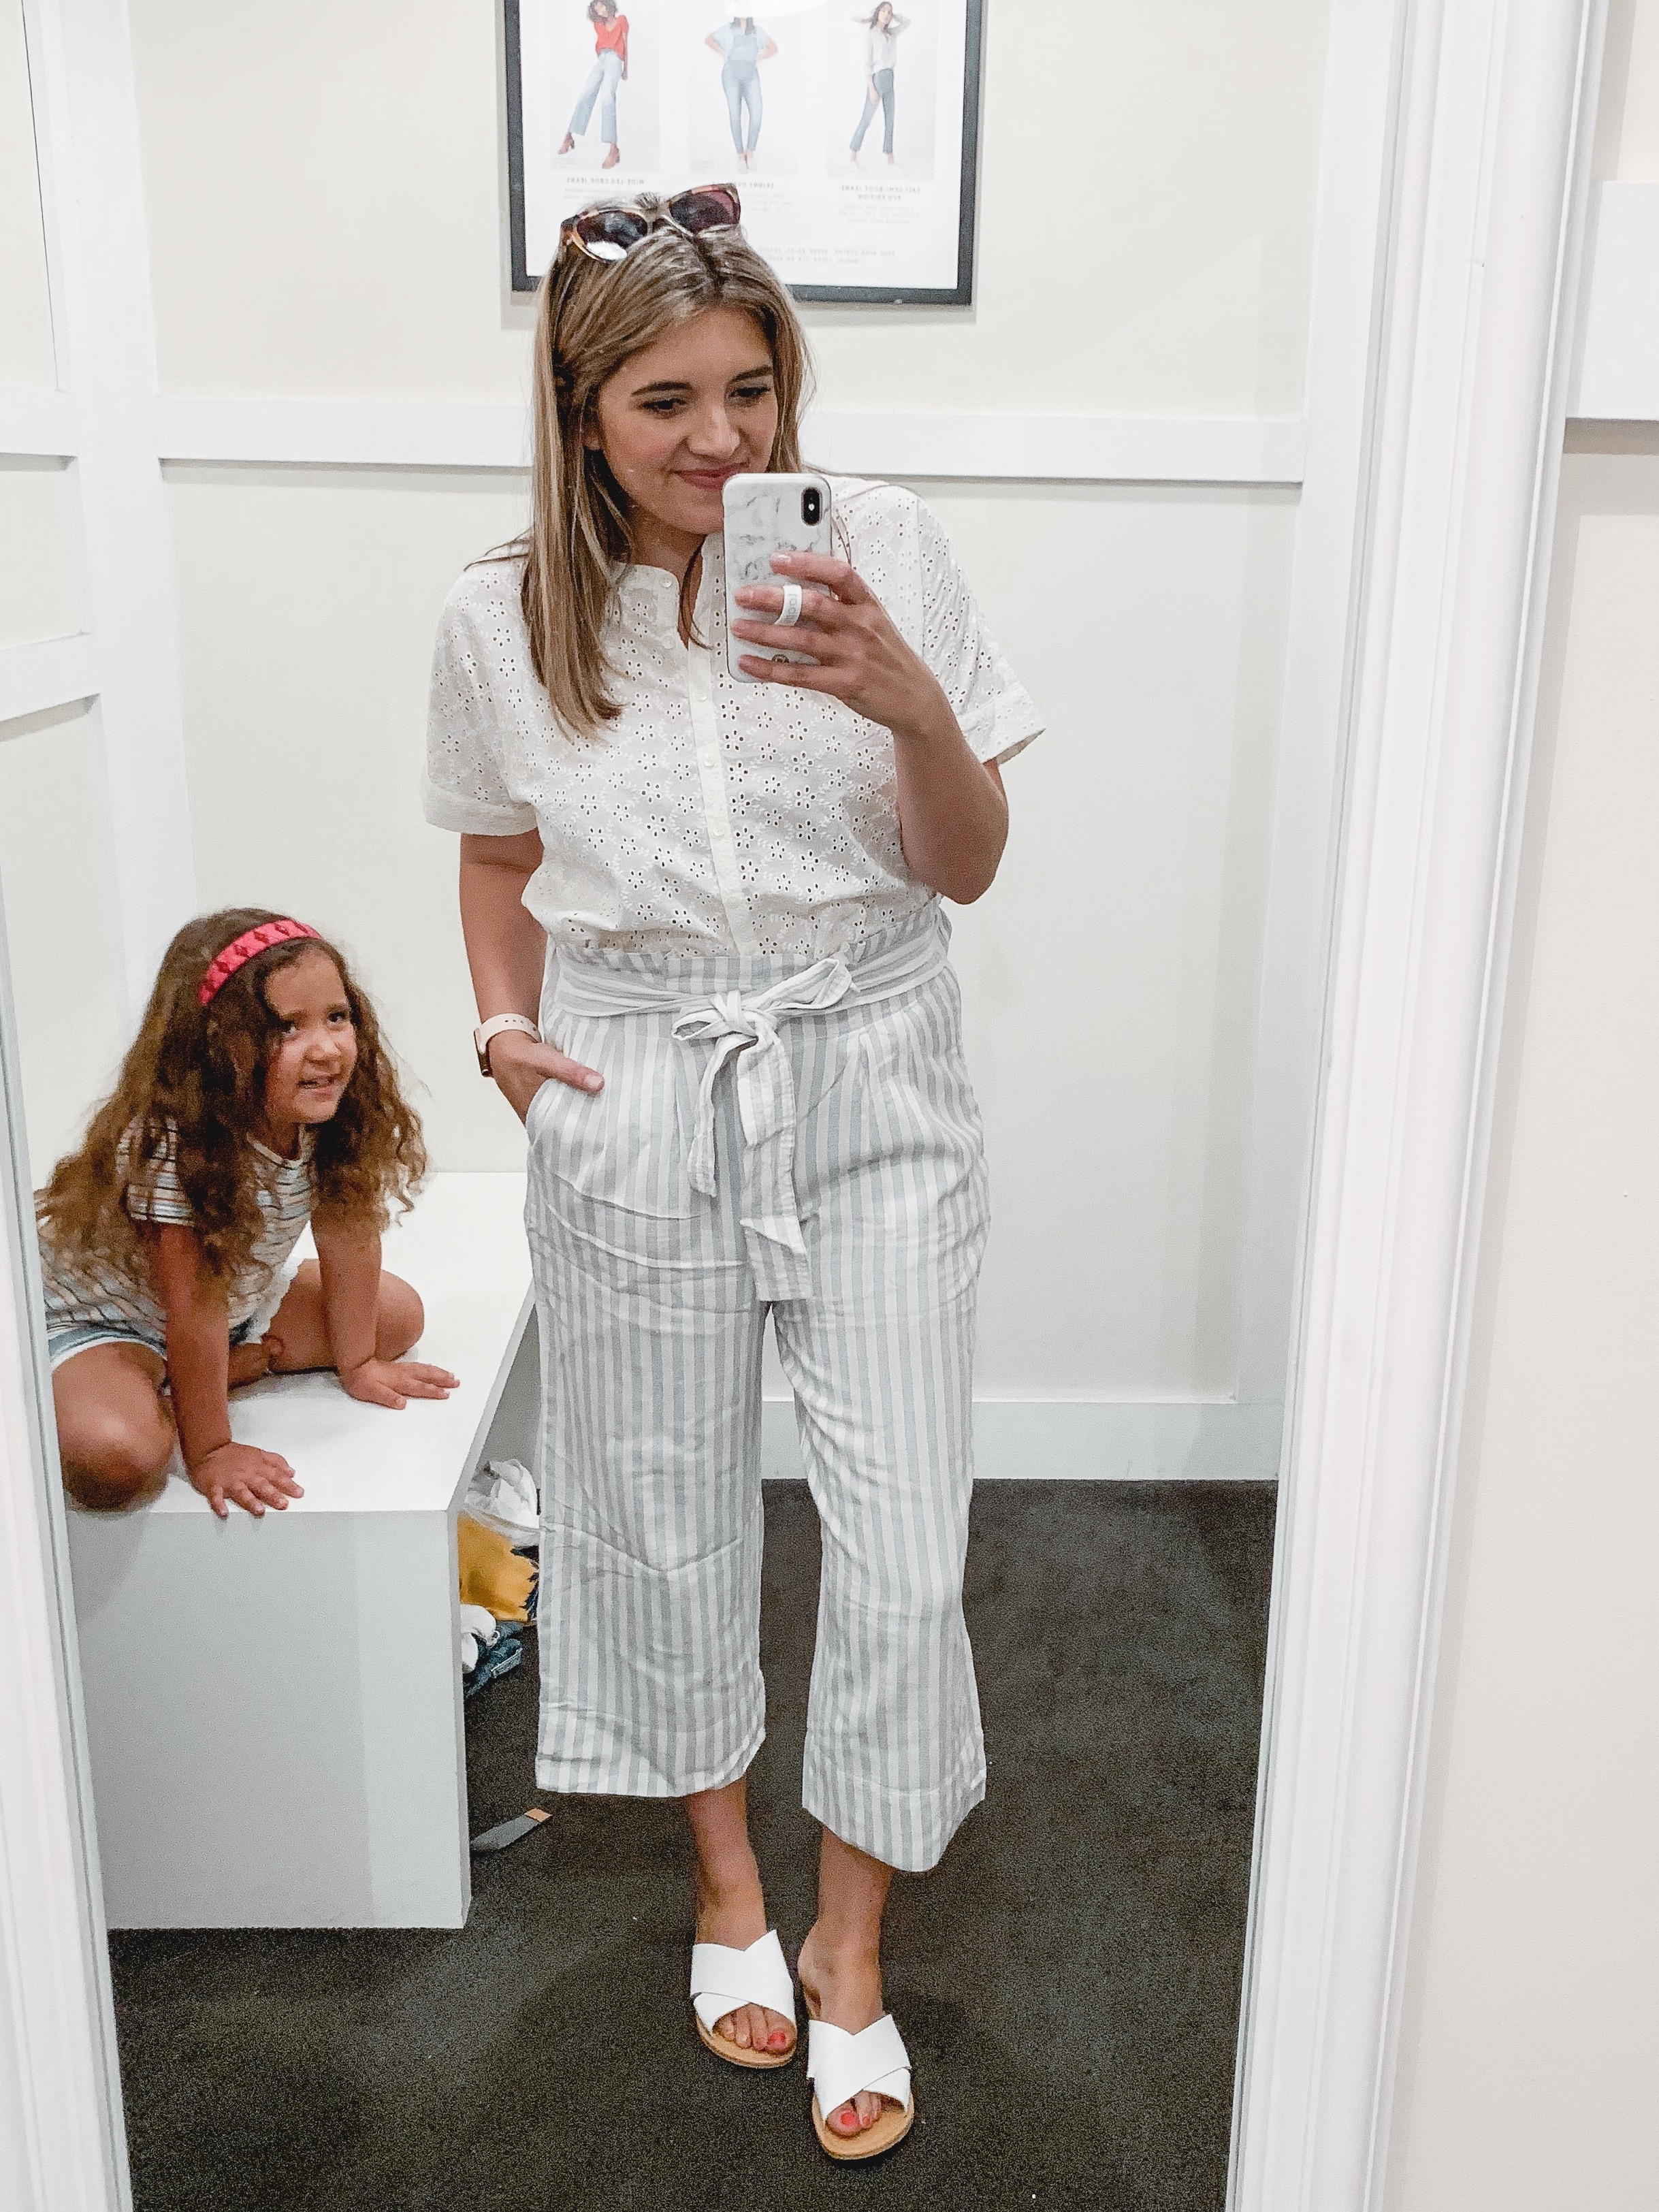 Virginia blogger, Lauren Dix, shares Madewell summer outfits in her July Madewell try on session!